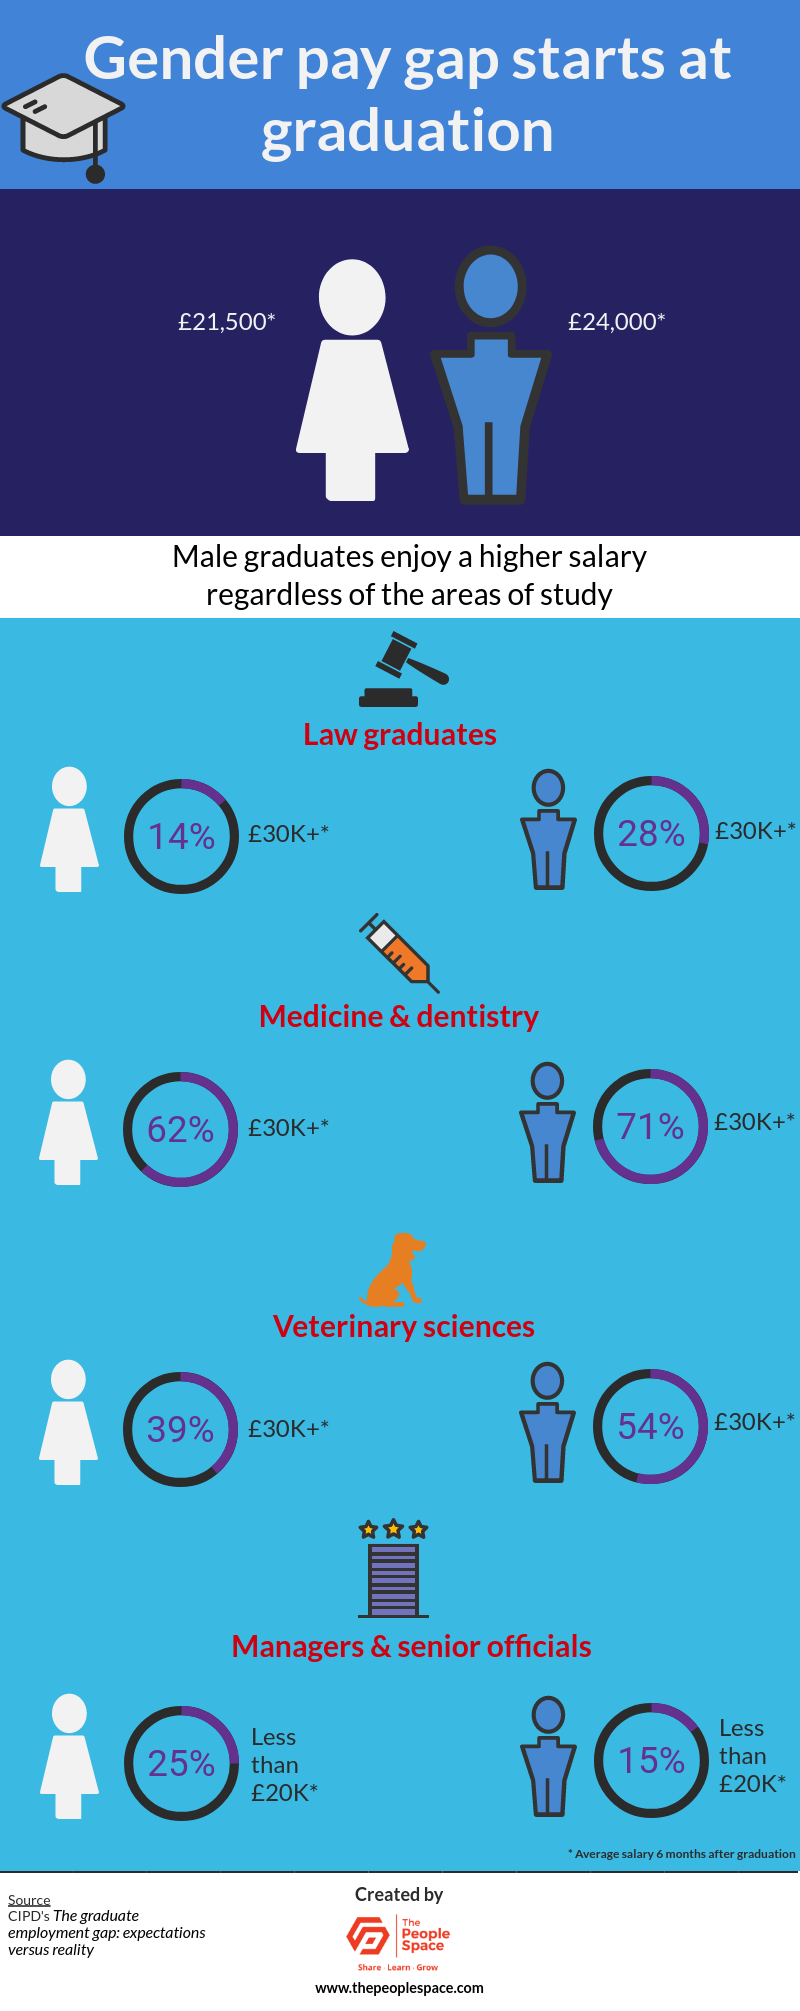 Gender pay gap starts at graduation infographic